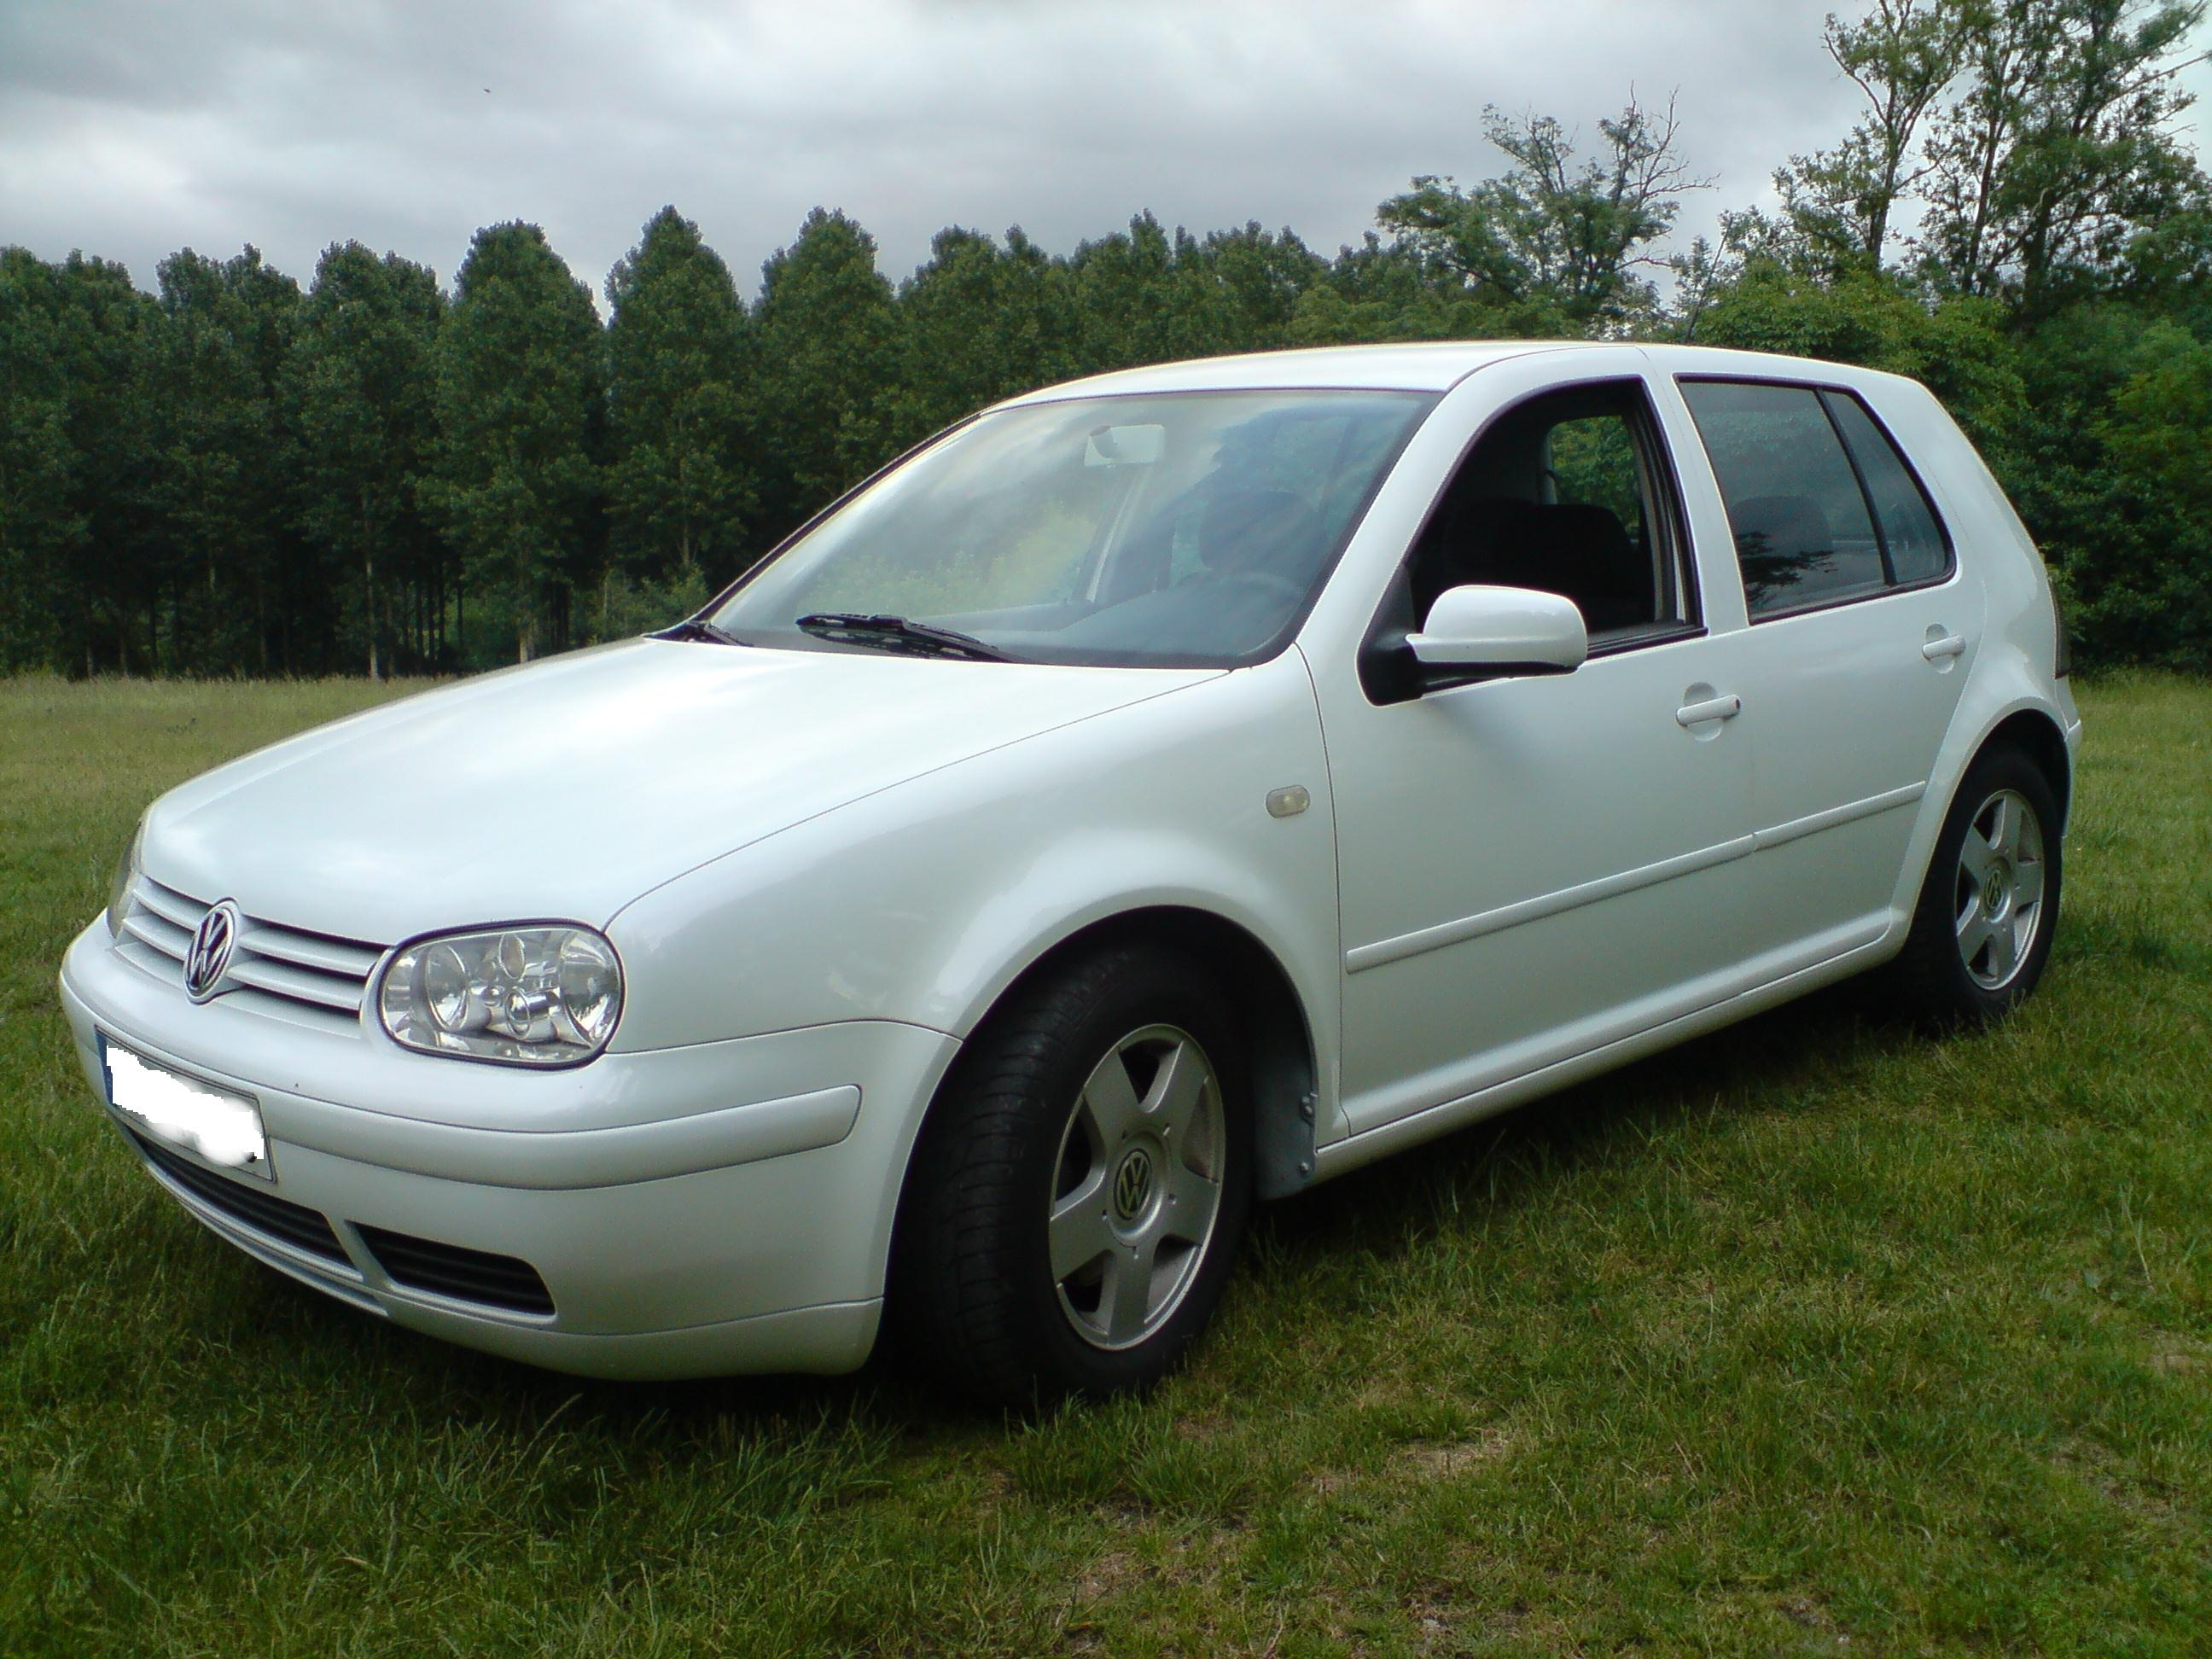 golf iv tdi 110 blanche de newstyll   garage des golf iv